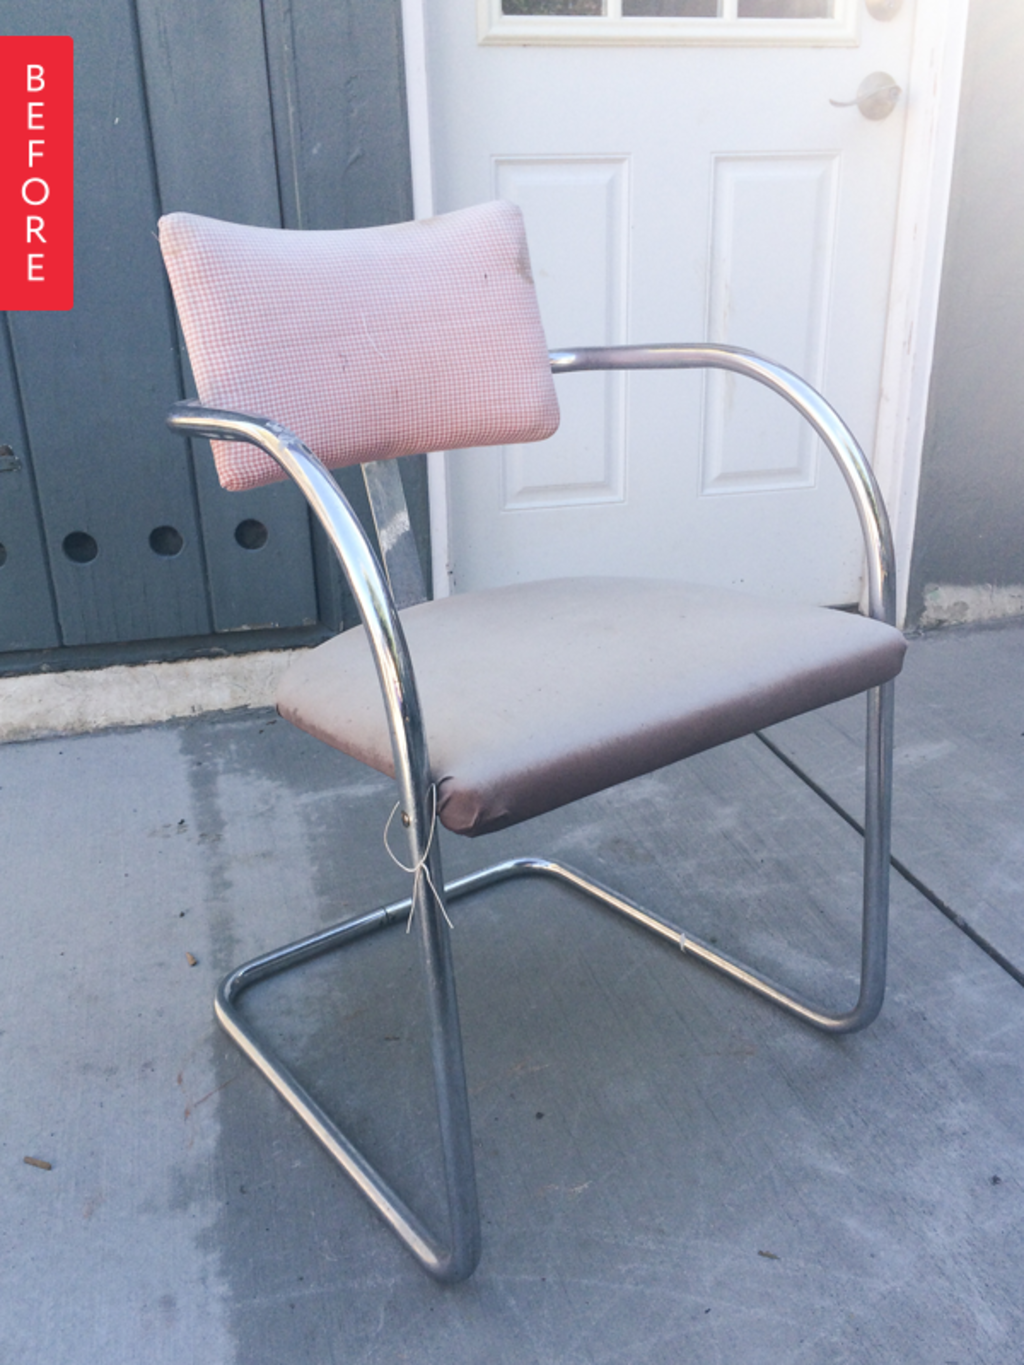 Before & After: A Free Chair Gets a Feathered Makeover